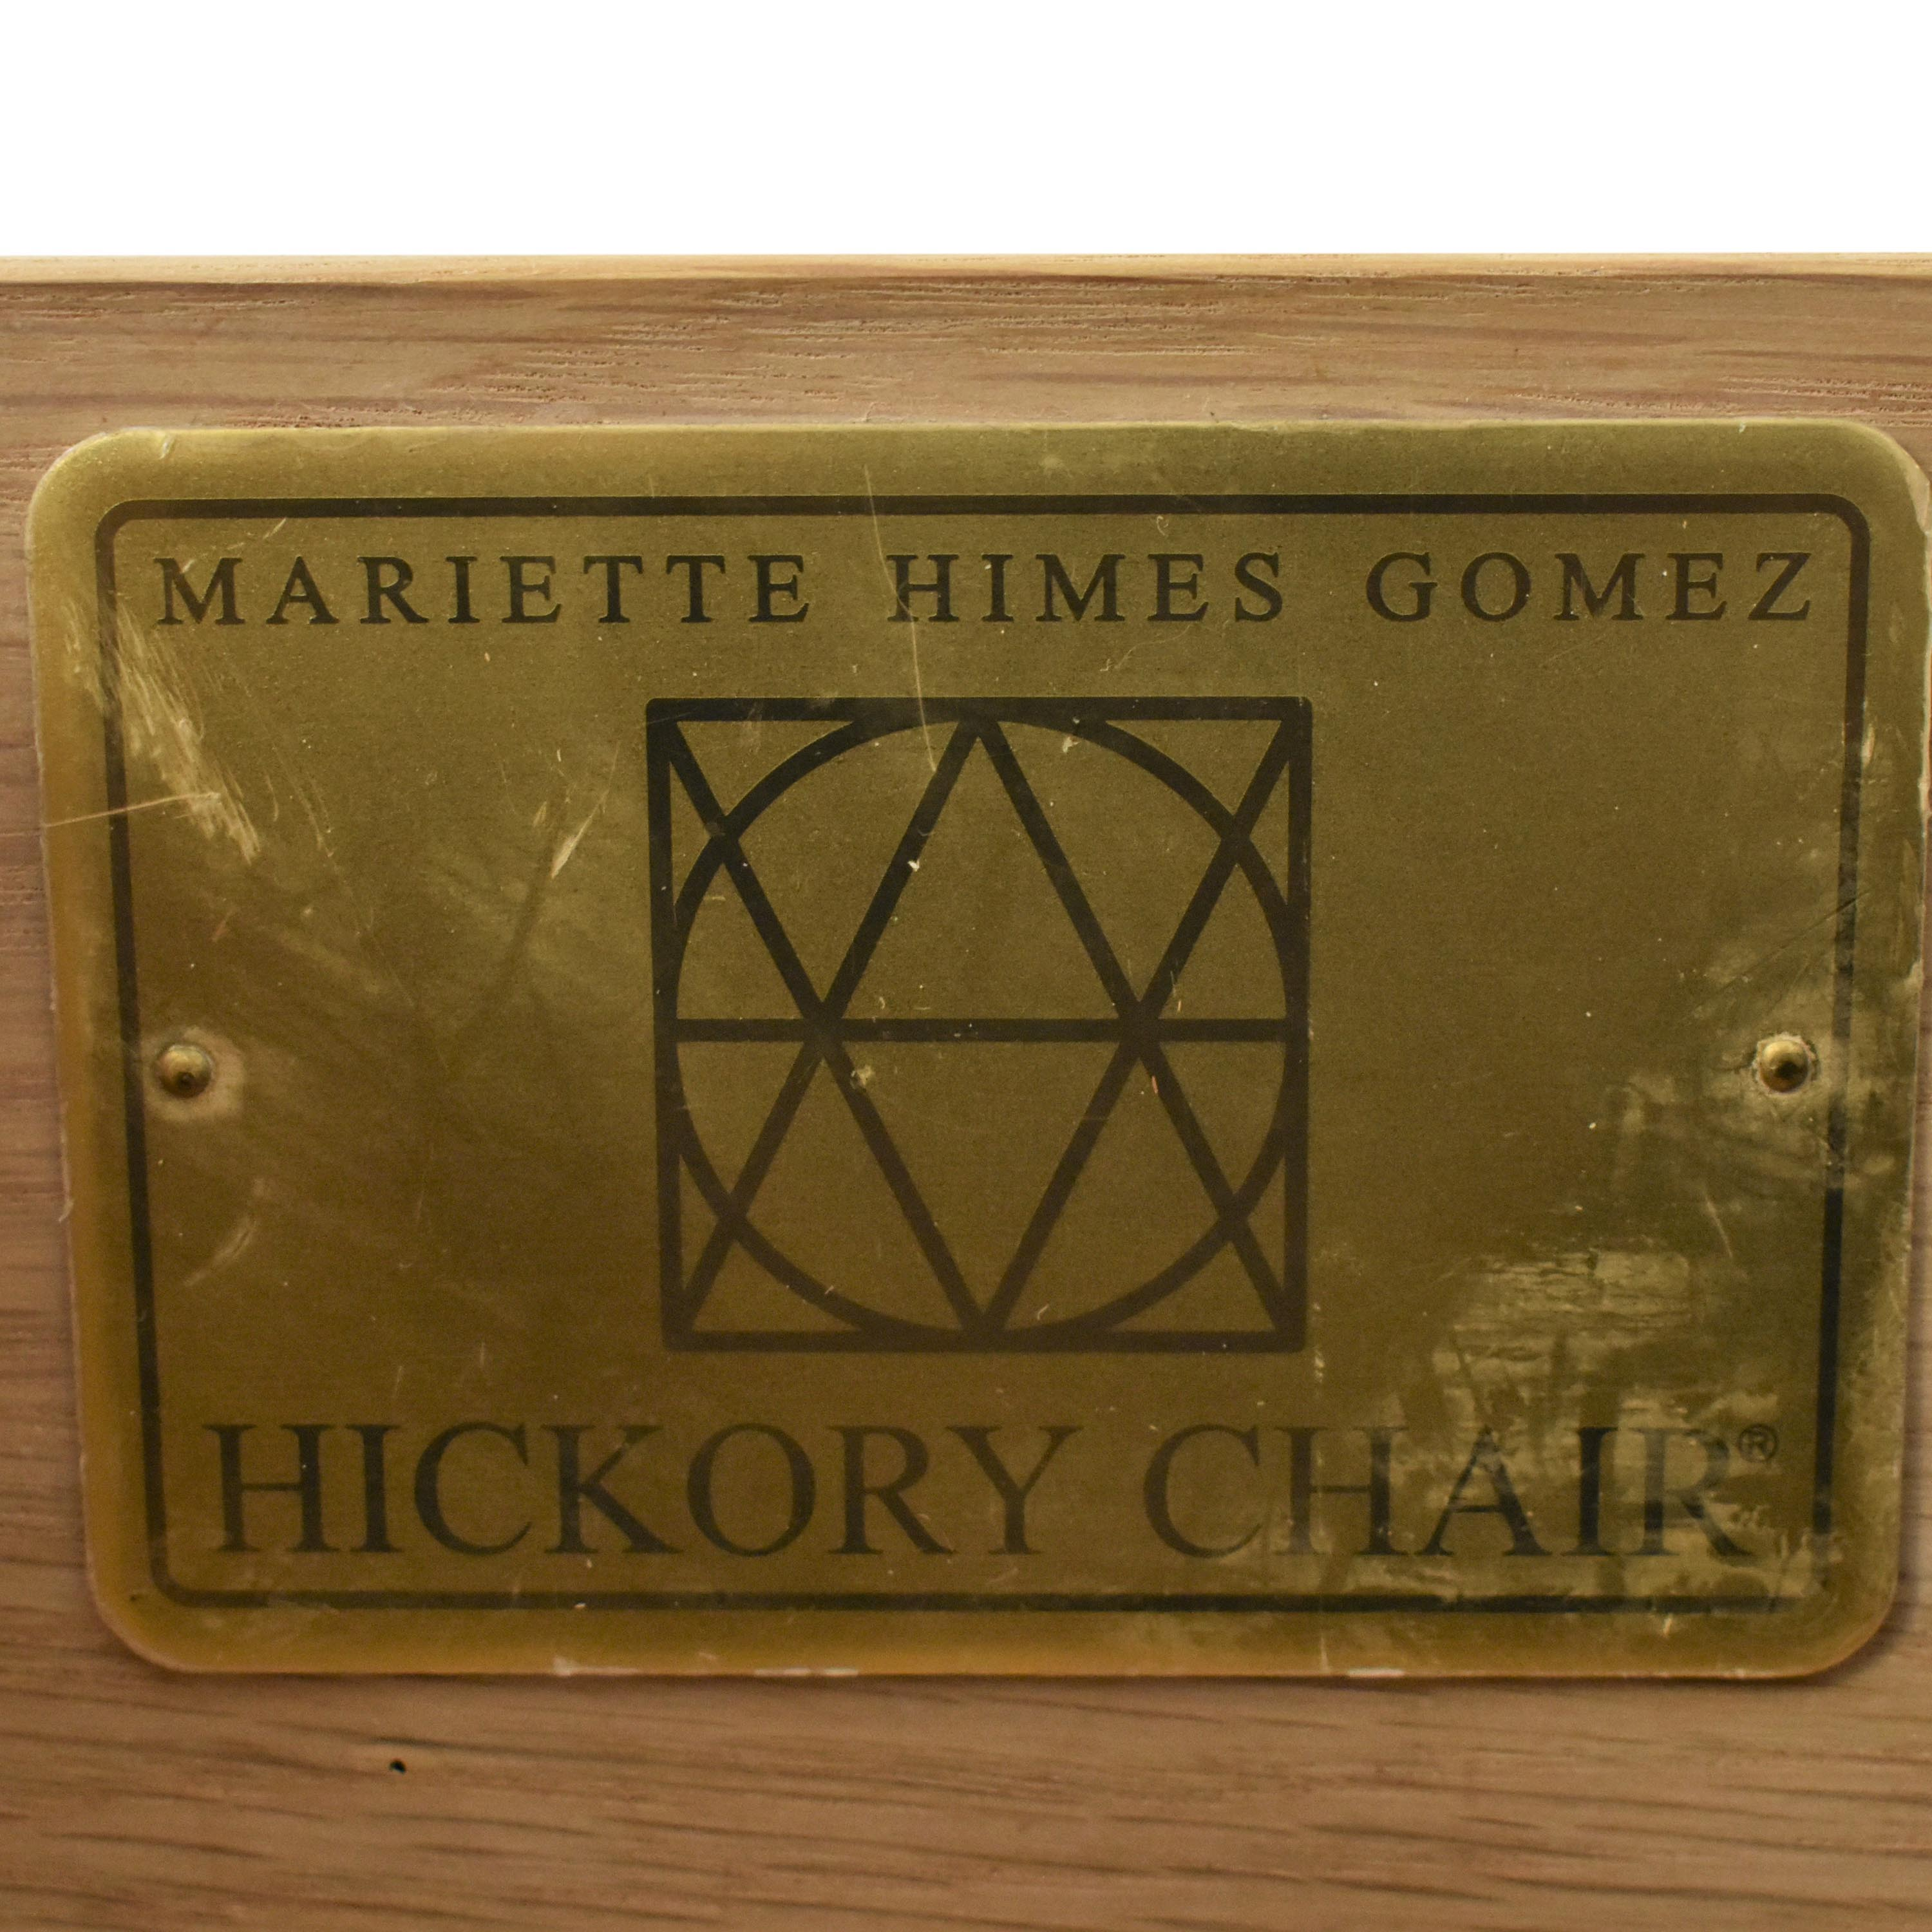 buy Hickory Chair Buffet Sideboard by Mariette Himes Gomez Hickory Chair Cabinets & Sideboards